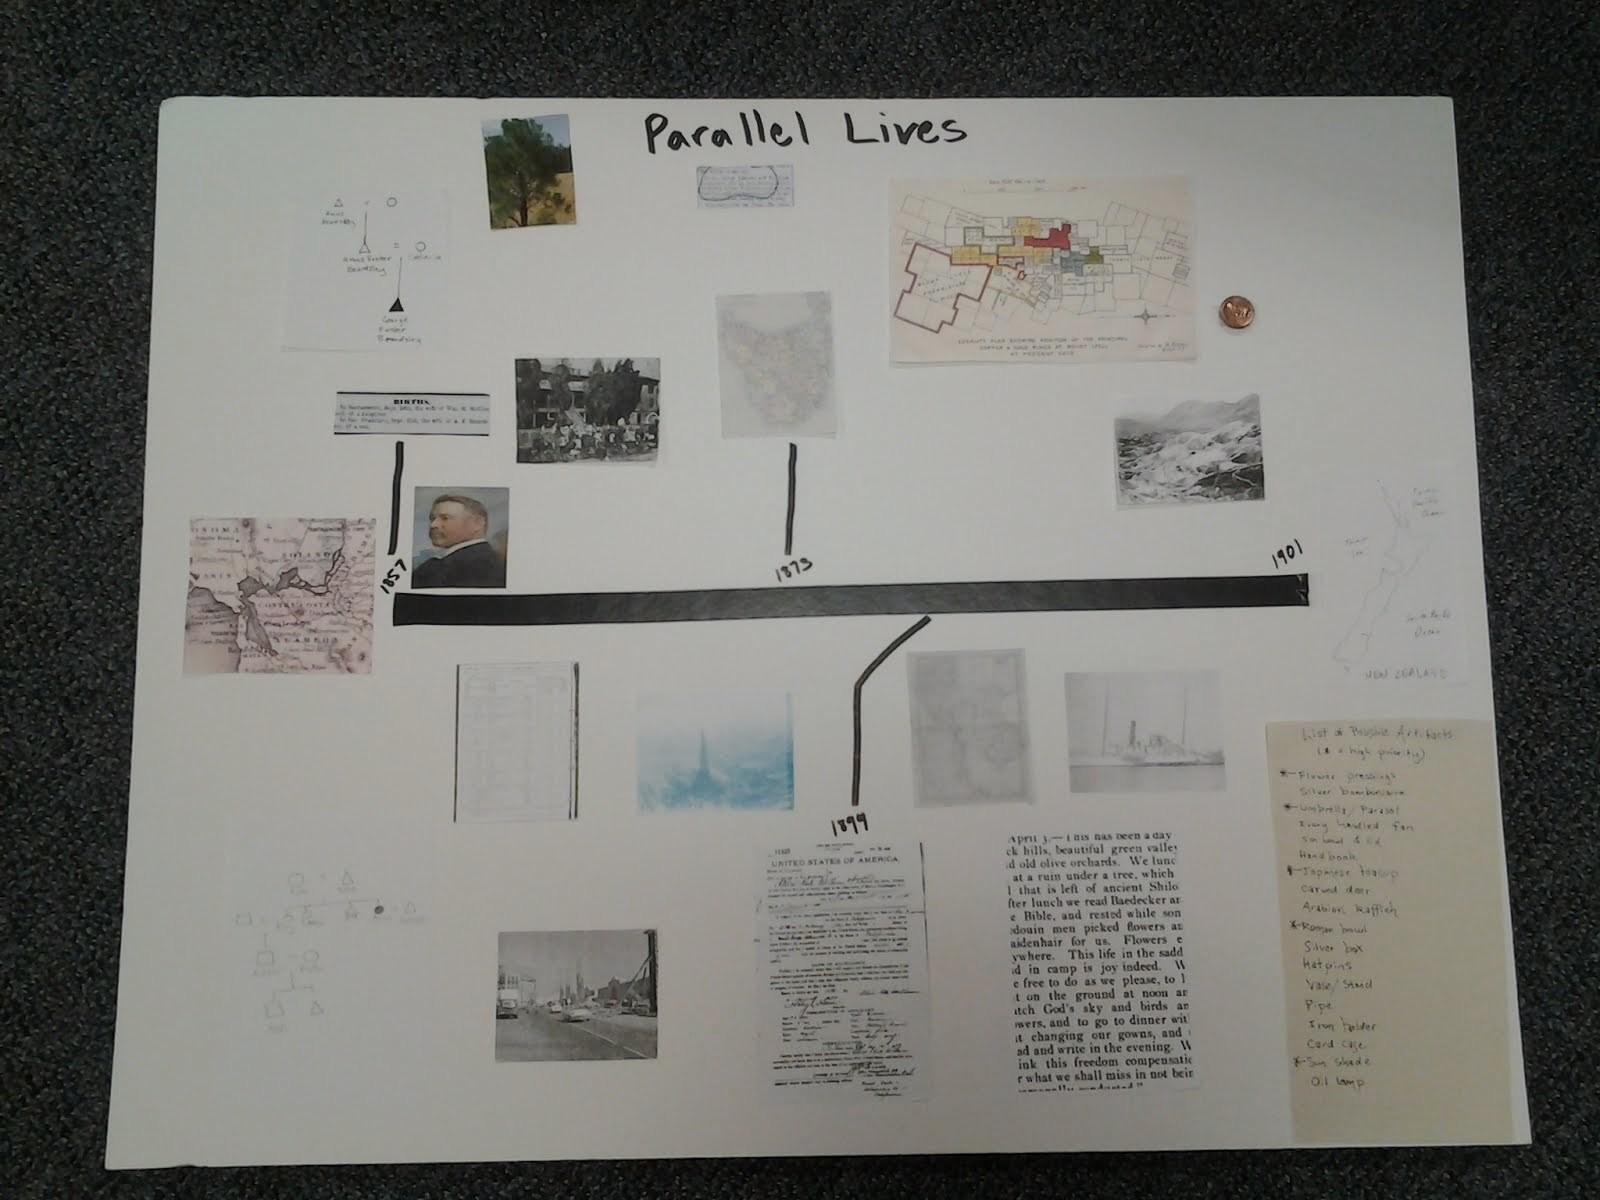 Parallel Lives Story Board